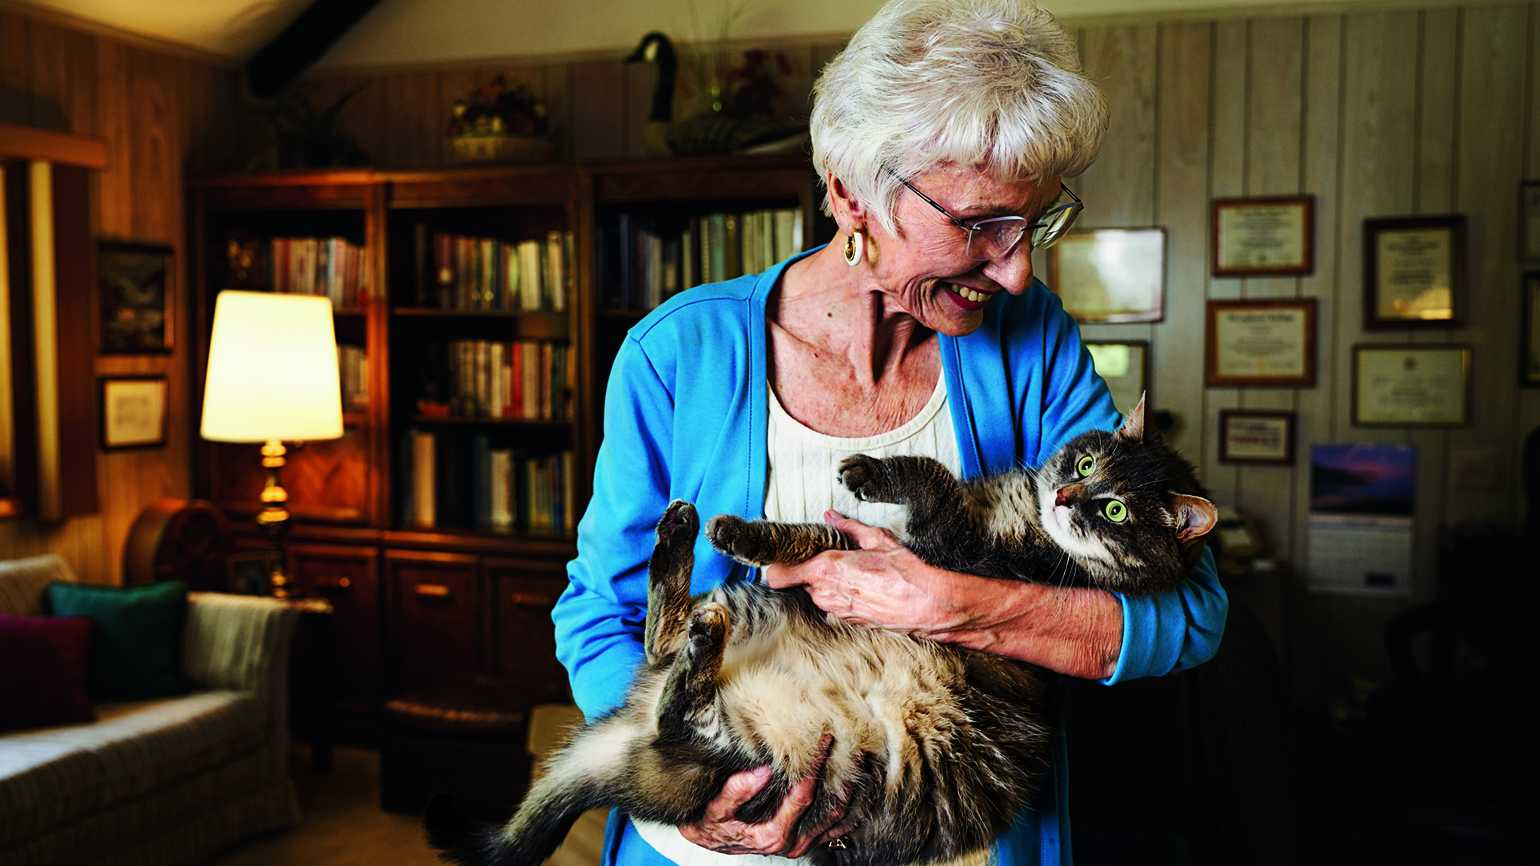 Carol and her favorite feline, Luna, whom she adopted from a shelter.